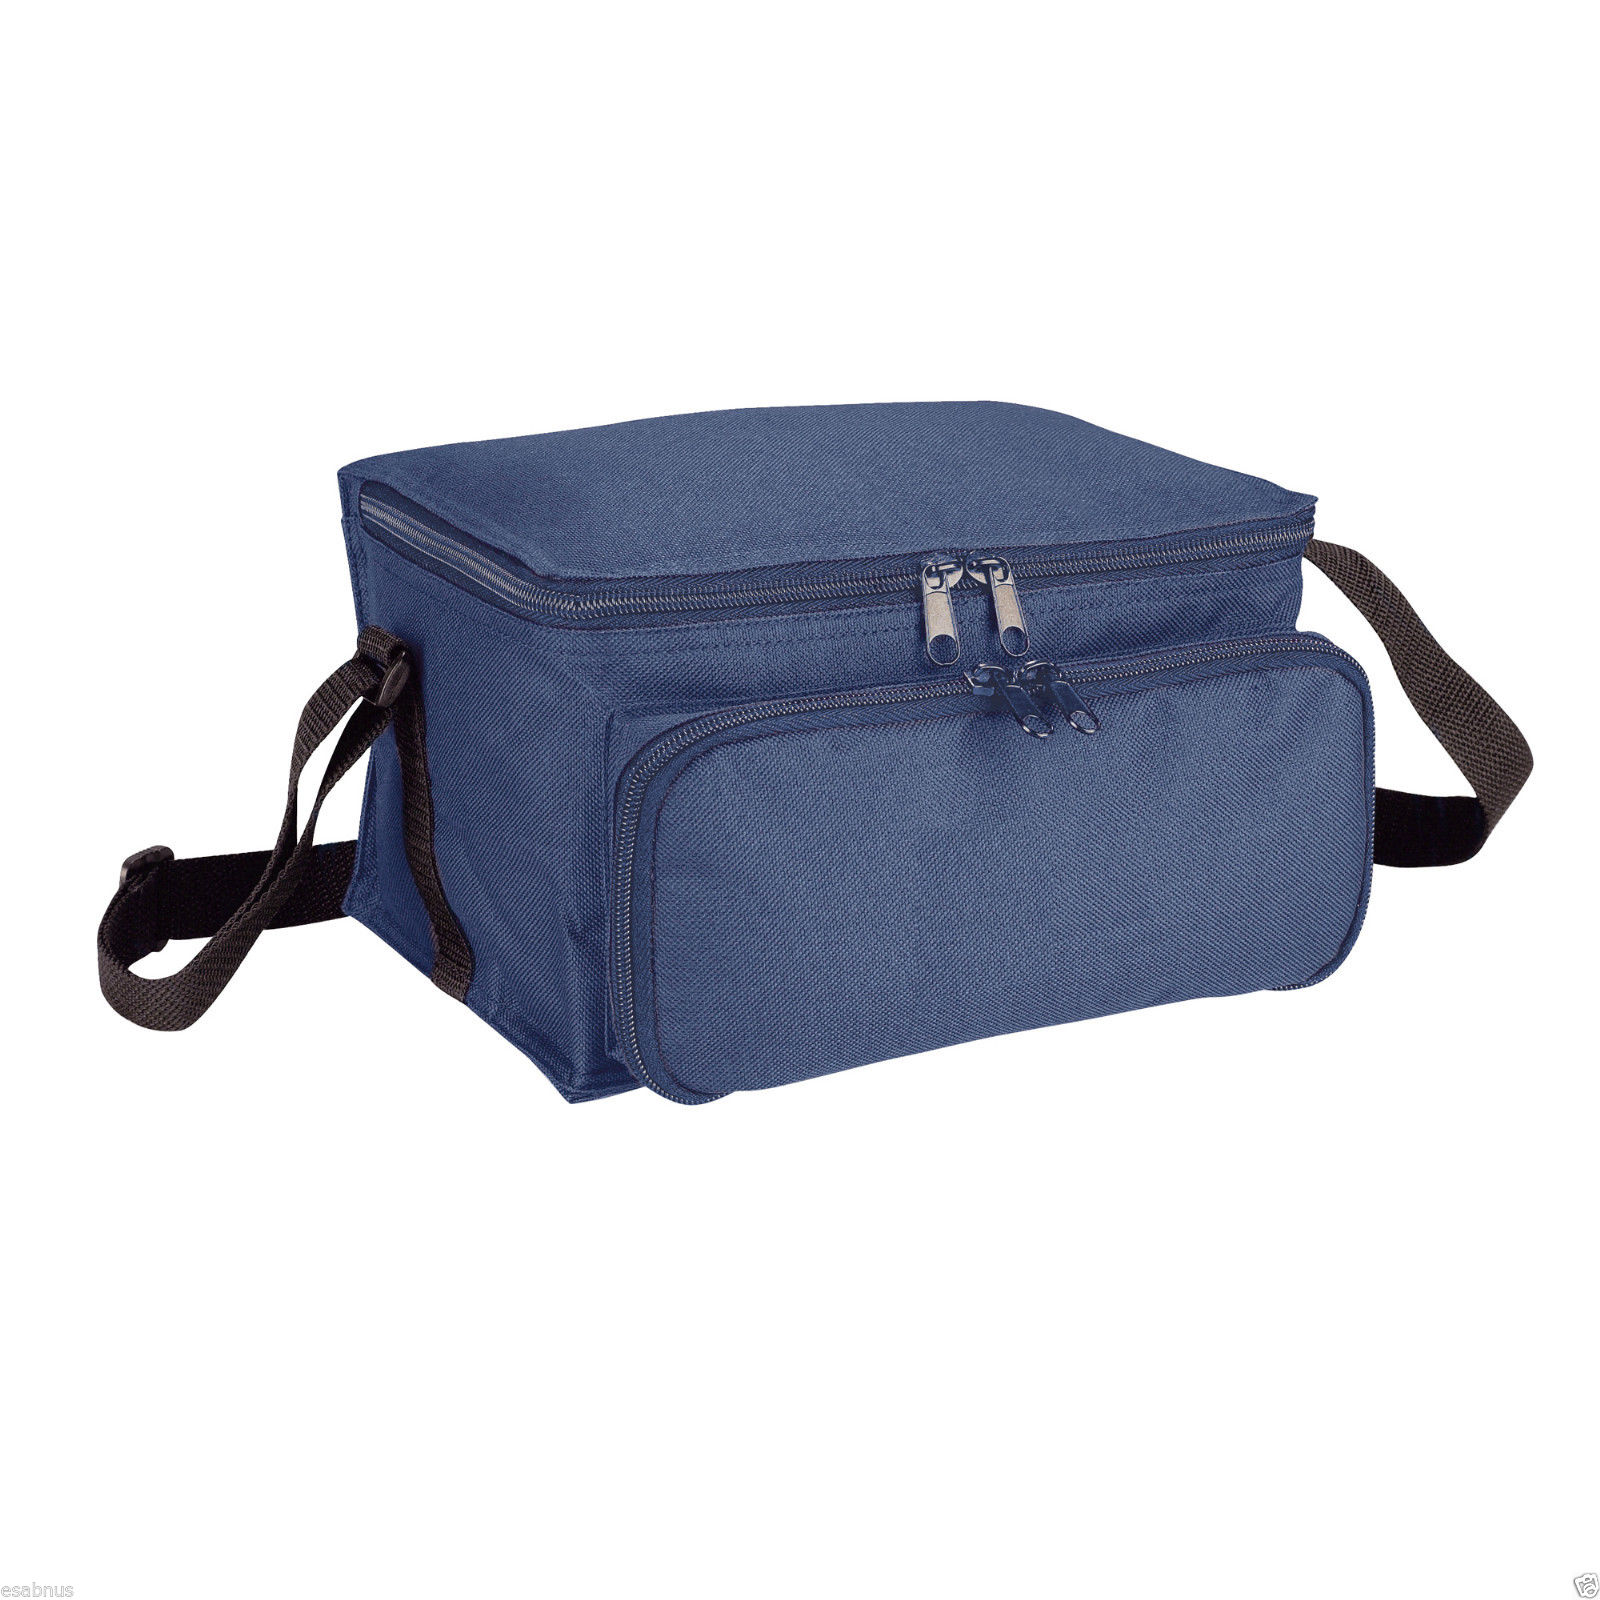 2 Compartment Coolbag/Cooler Bag/Lunch Box PICNIC BBQ CAMPING blue/white/orange